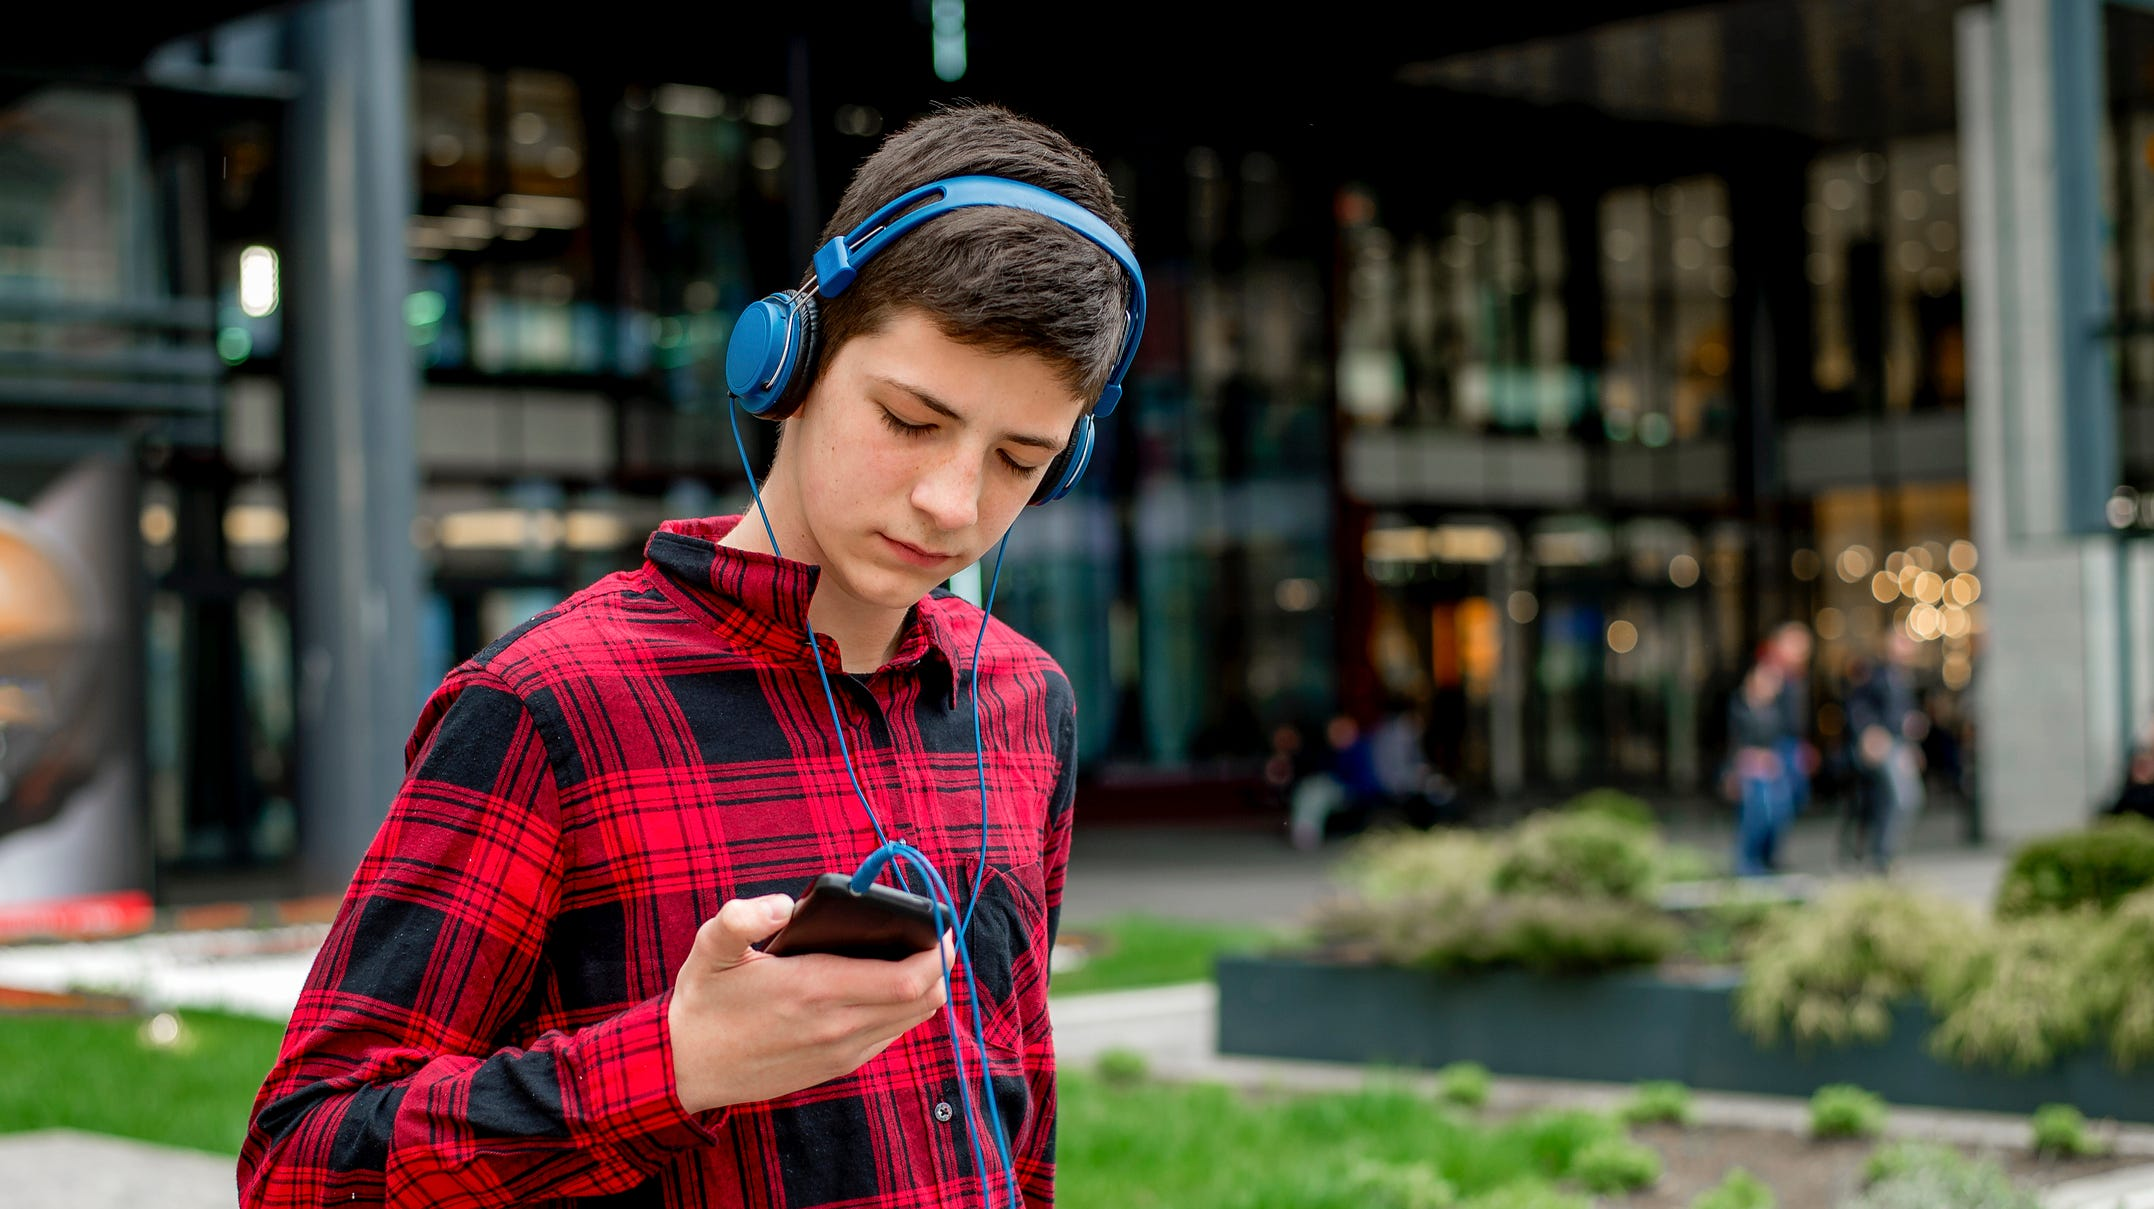 Earbuds tend to damage the inner ear, hindering the brain's ability to receive certain pitches from the inner ear.